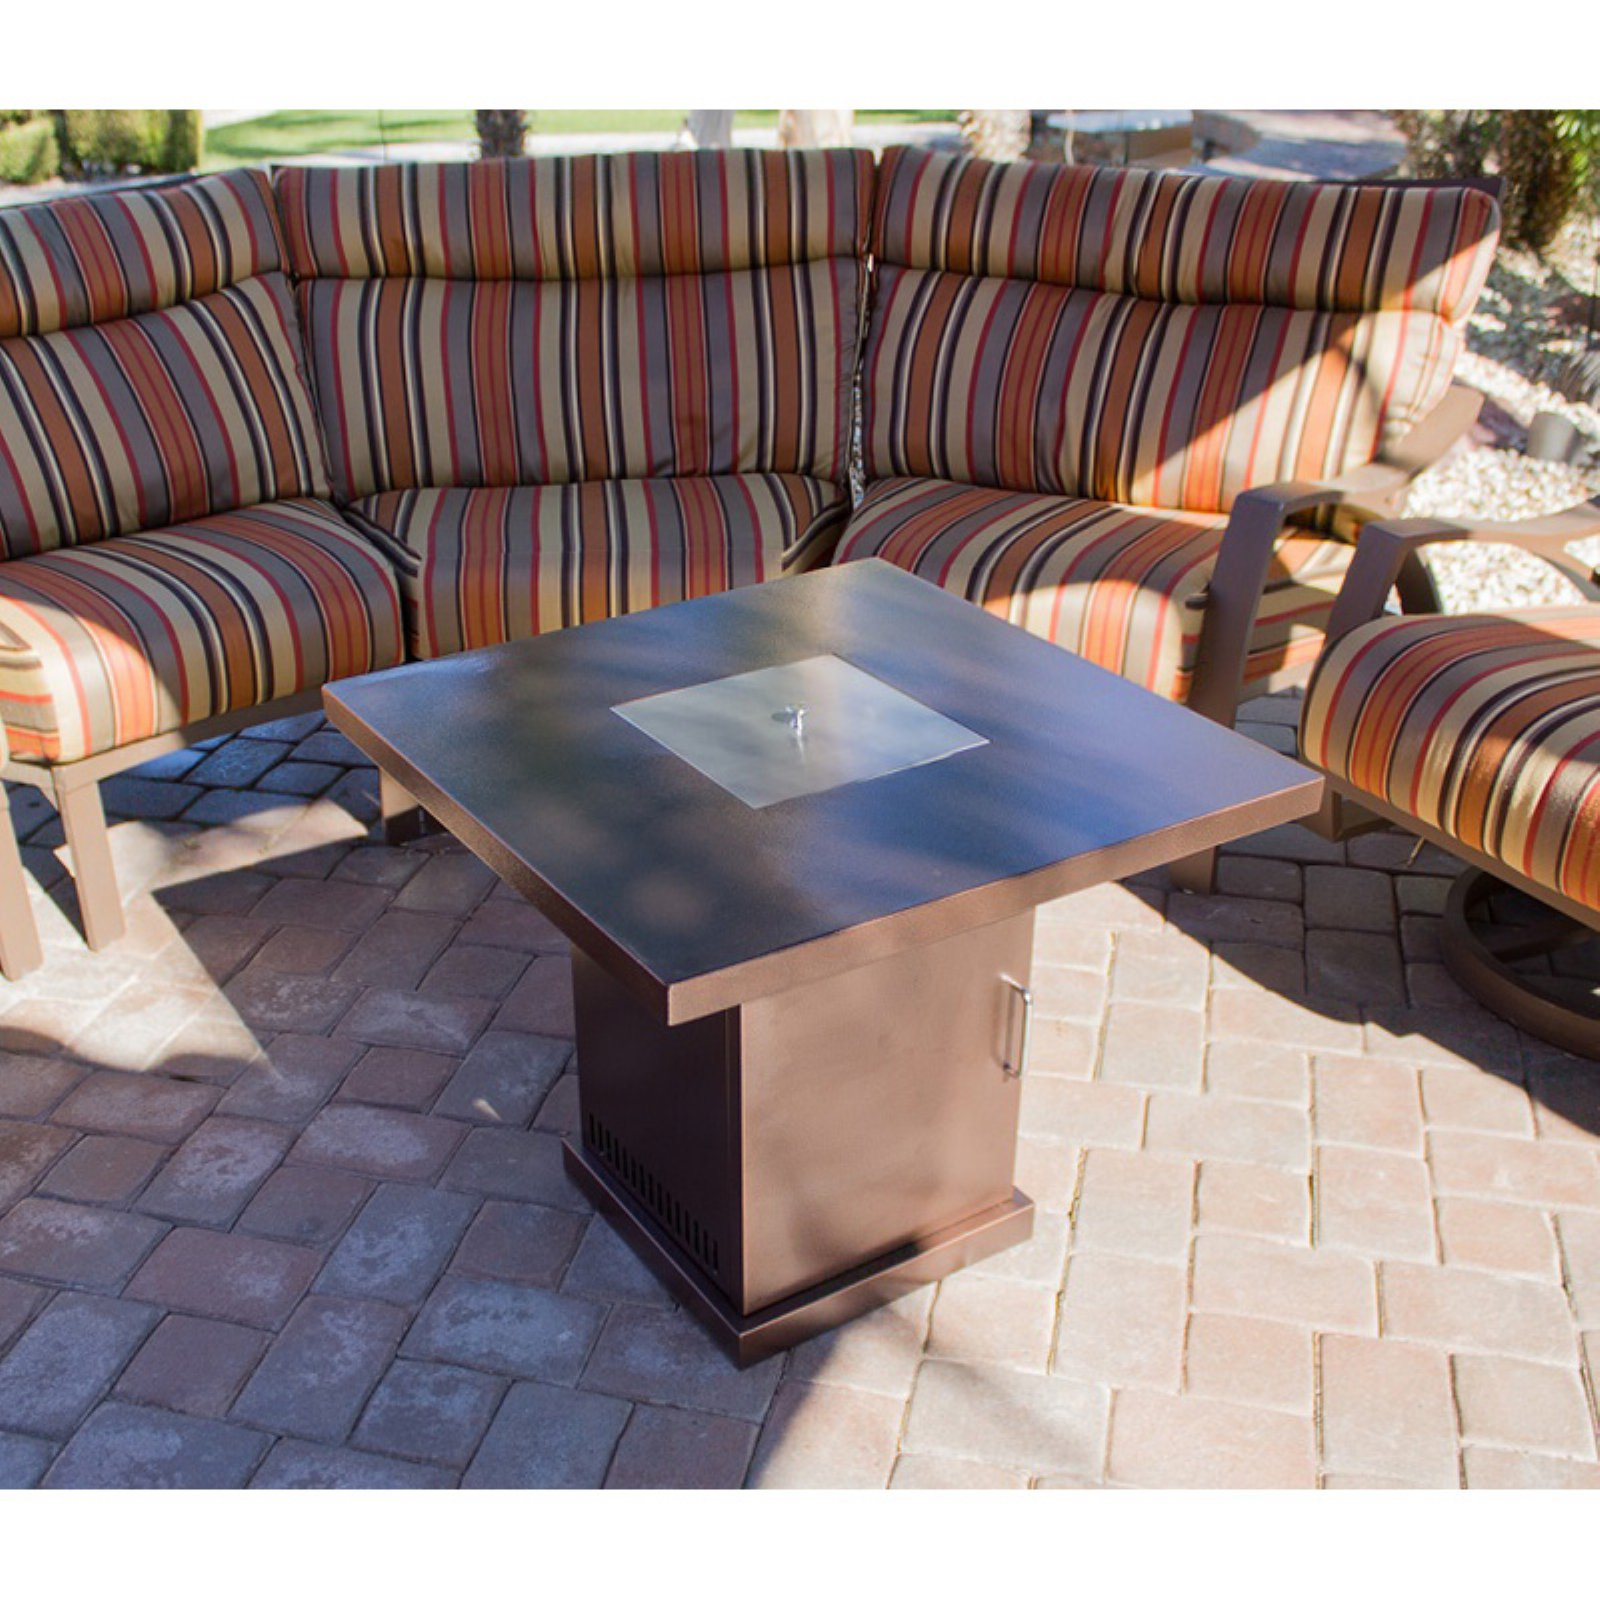 AZ Patio Heater Hiland Propane Gas Fire Pit